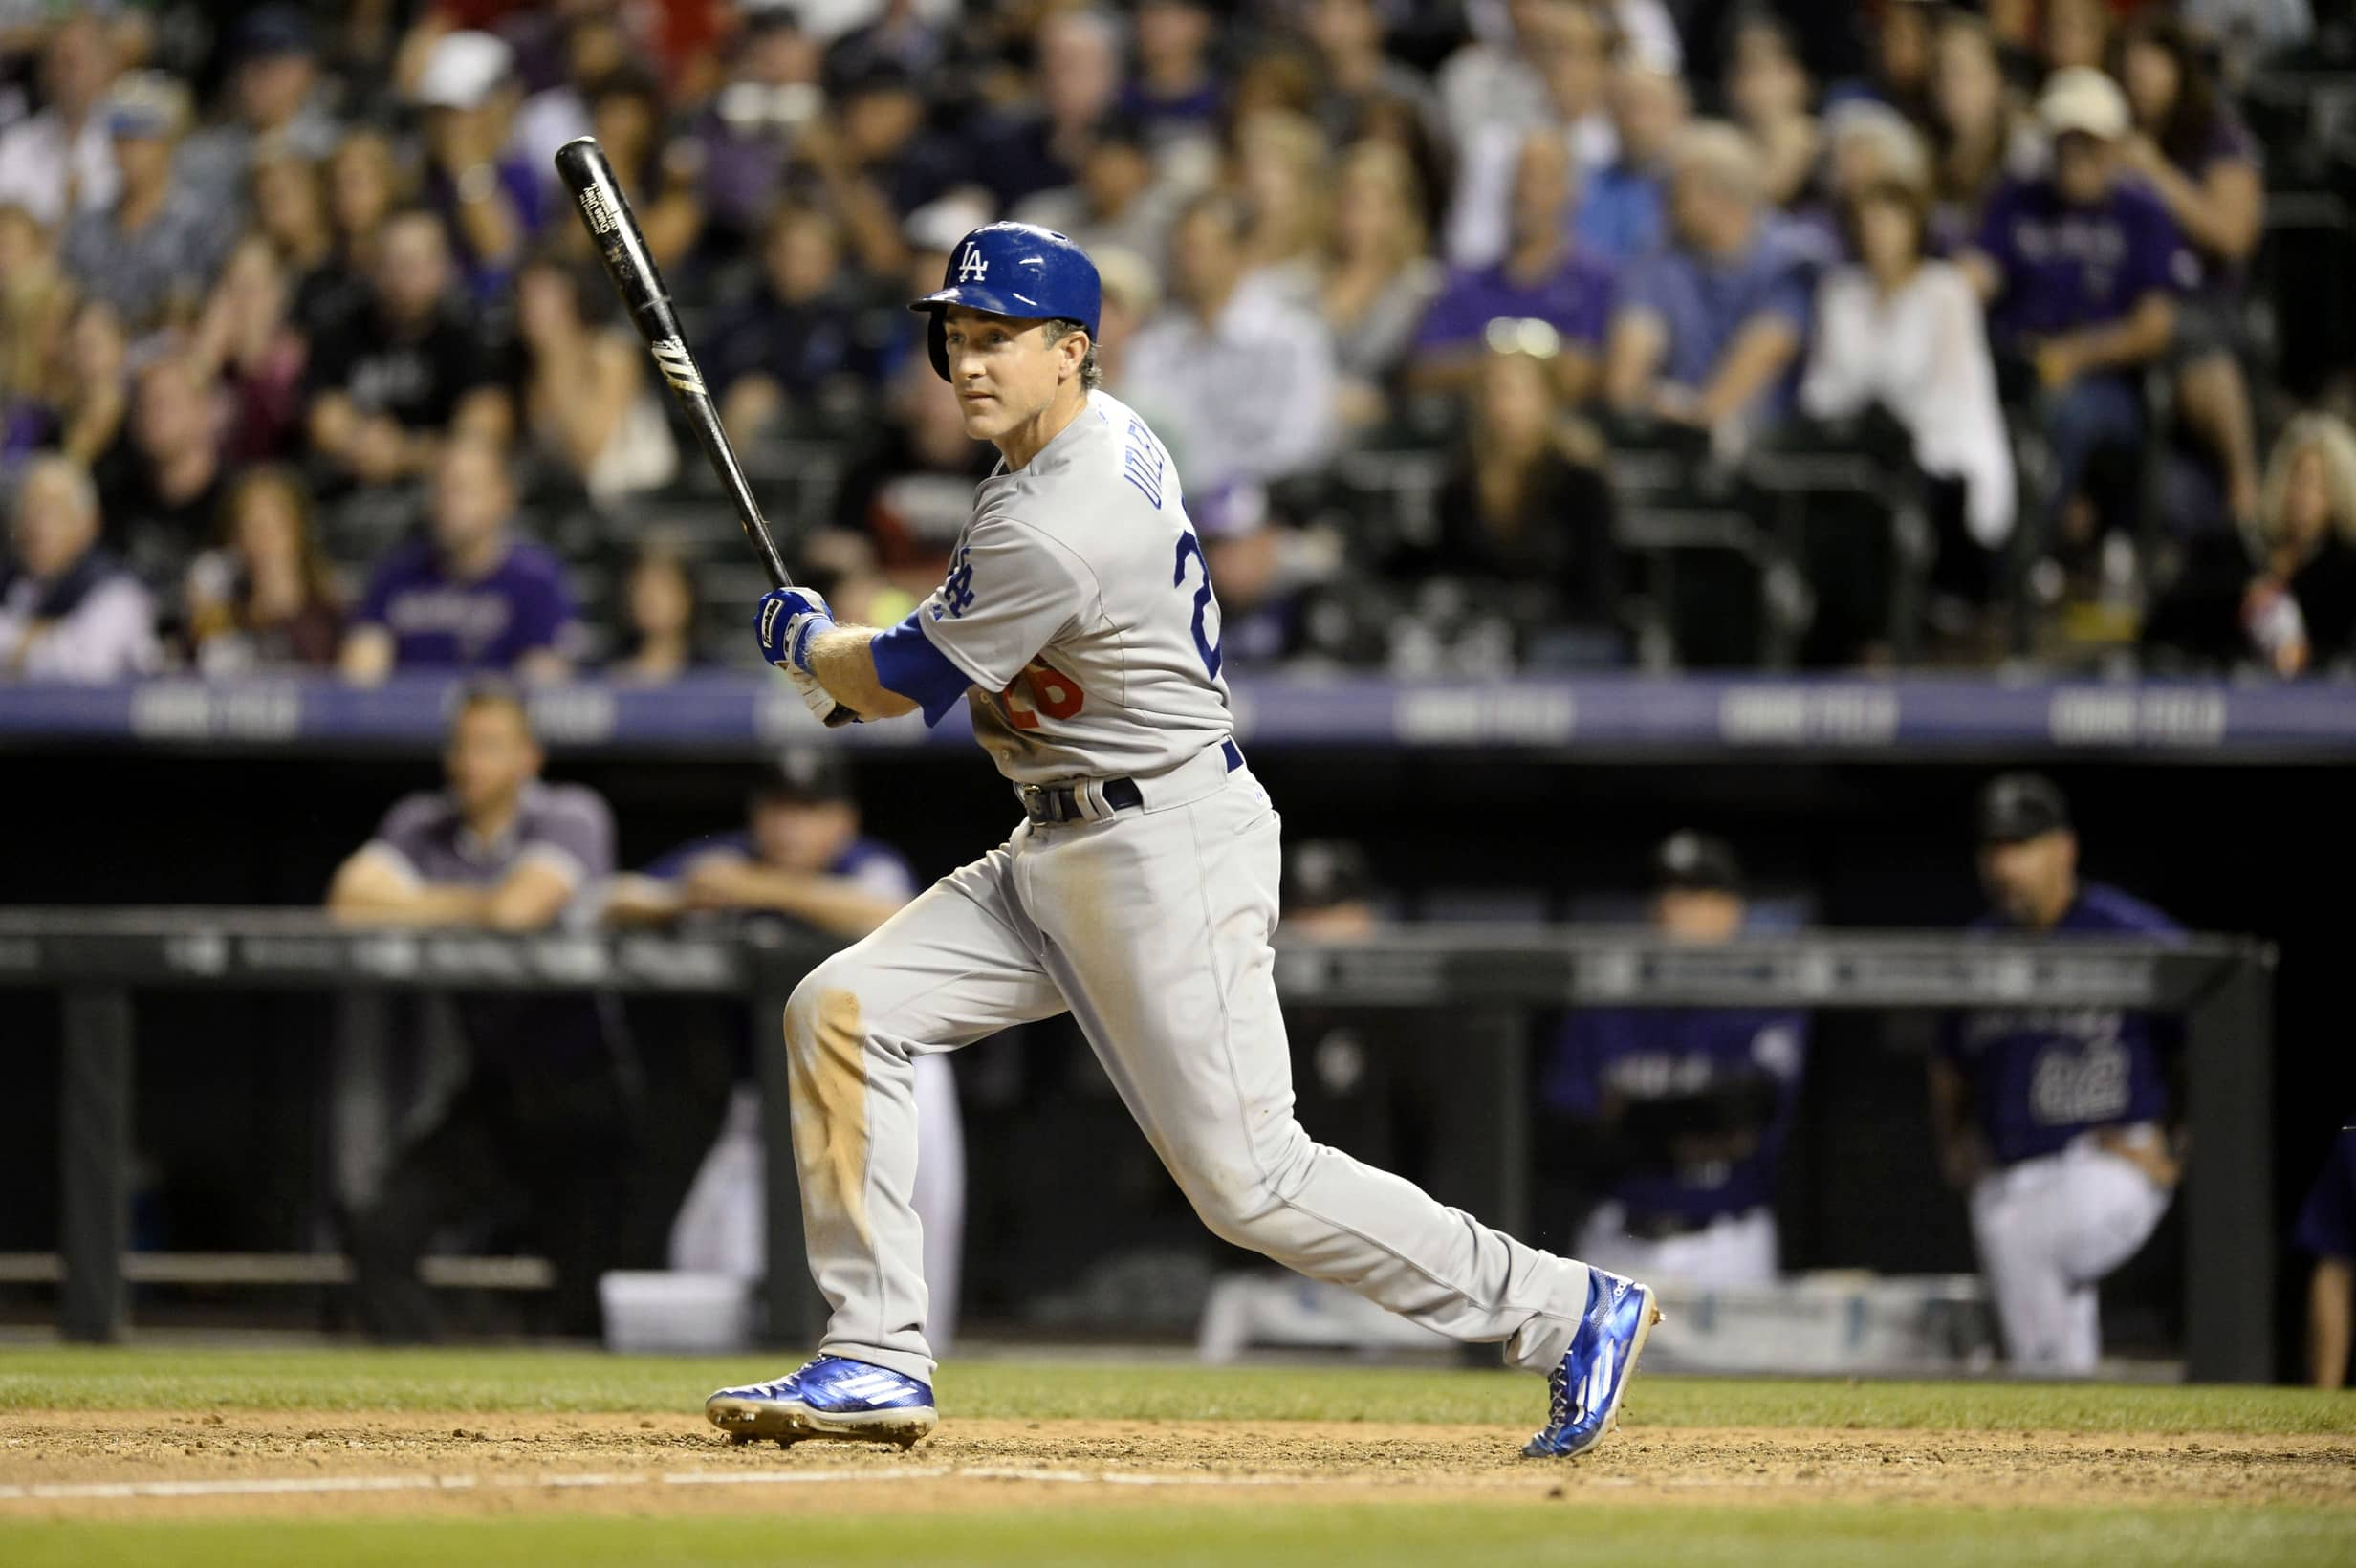 Sep 25, 2015; Denver, CO, USA; Los Angeles Dodgers third baseman Chase Utley (26) doubles in the fifth inning against the Colorado Rockies at Coors Field. Mandatory Credit: Ron Chenoy-USA TODAY Sports